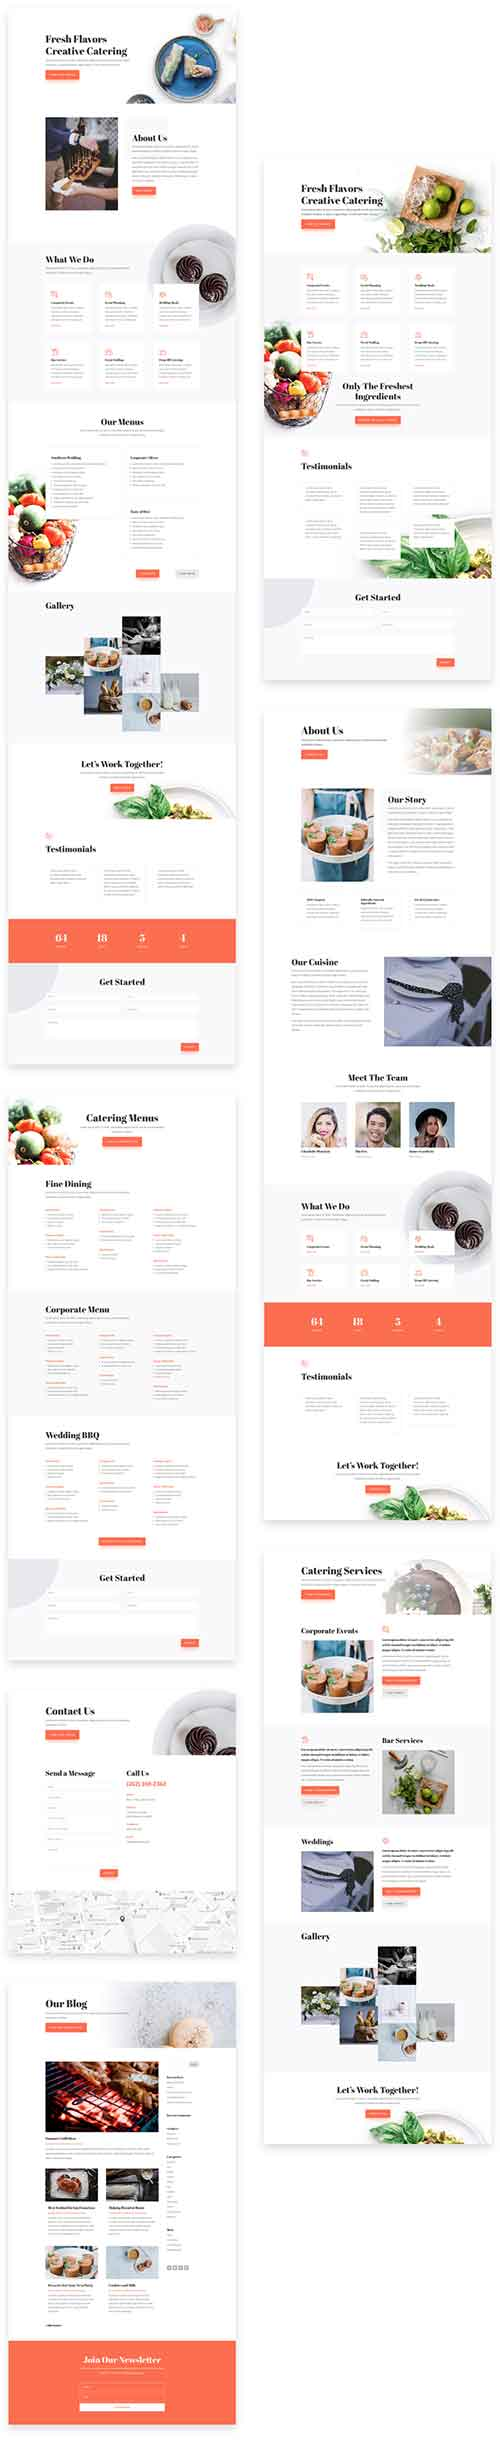 divi catering layout pack